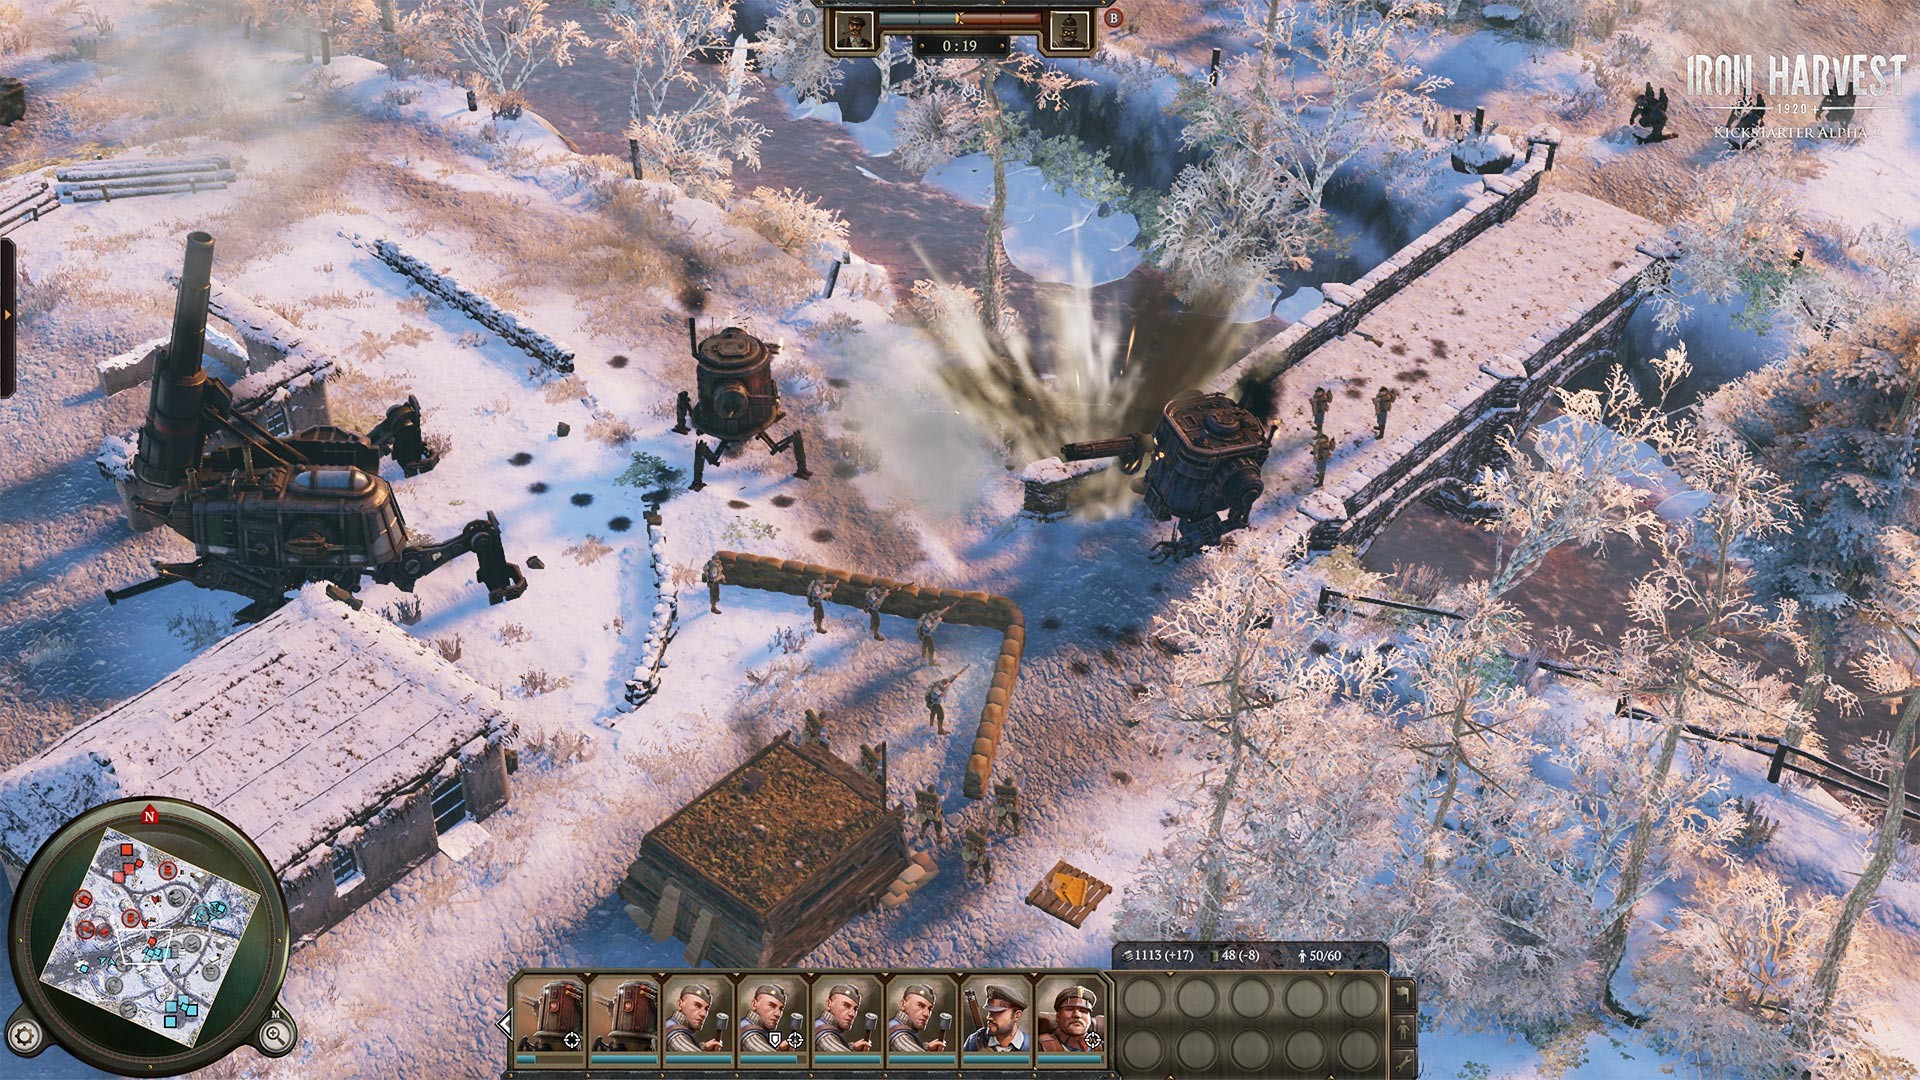 Screenshot for the game Iron Harvest - Deluxe Edition v.1.1.5.2145 [GOG]